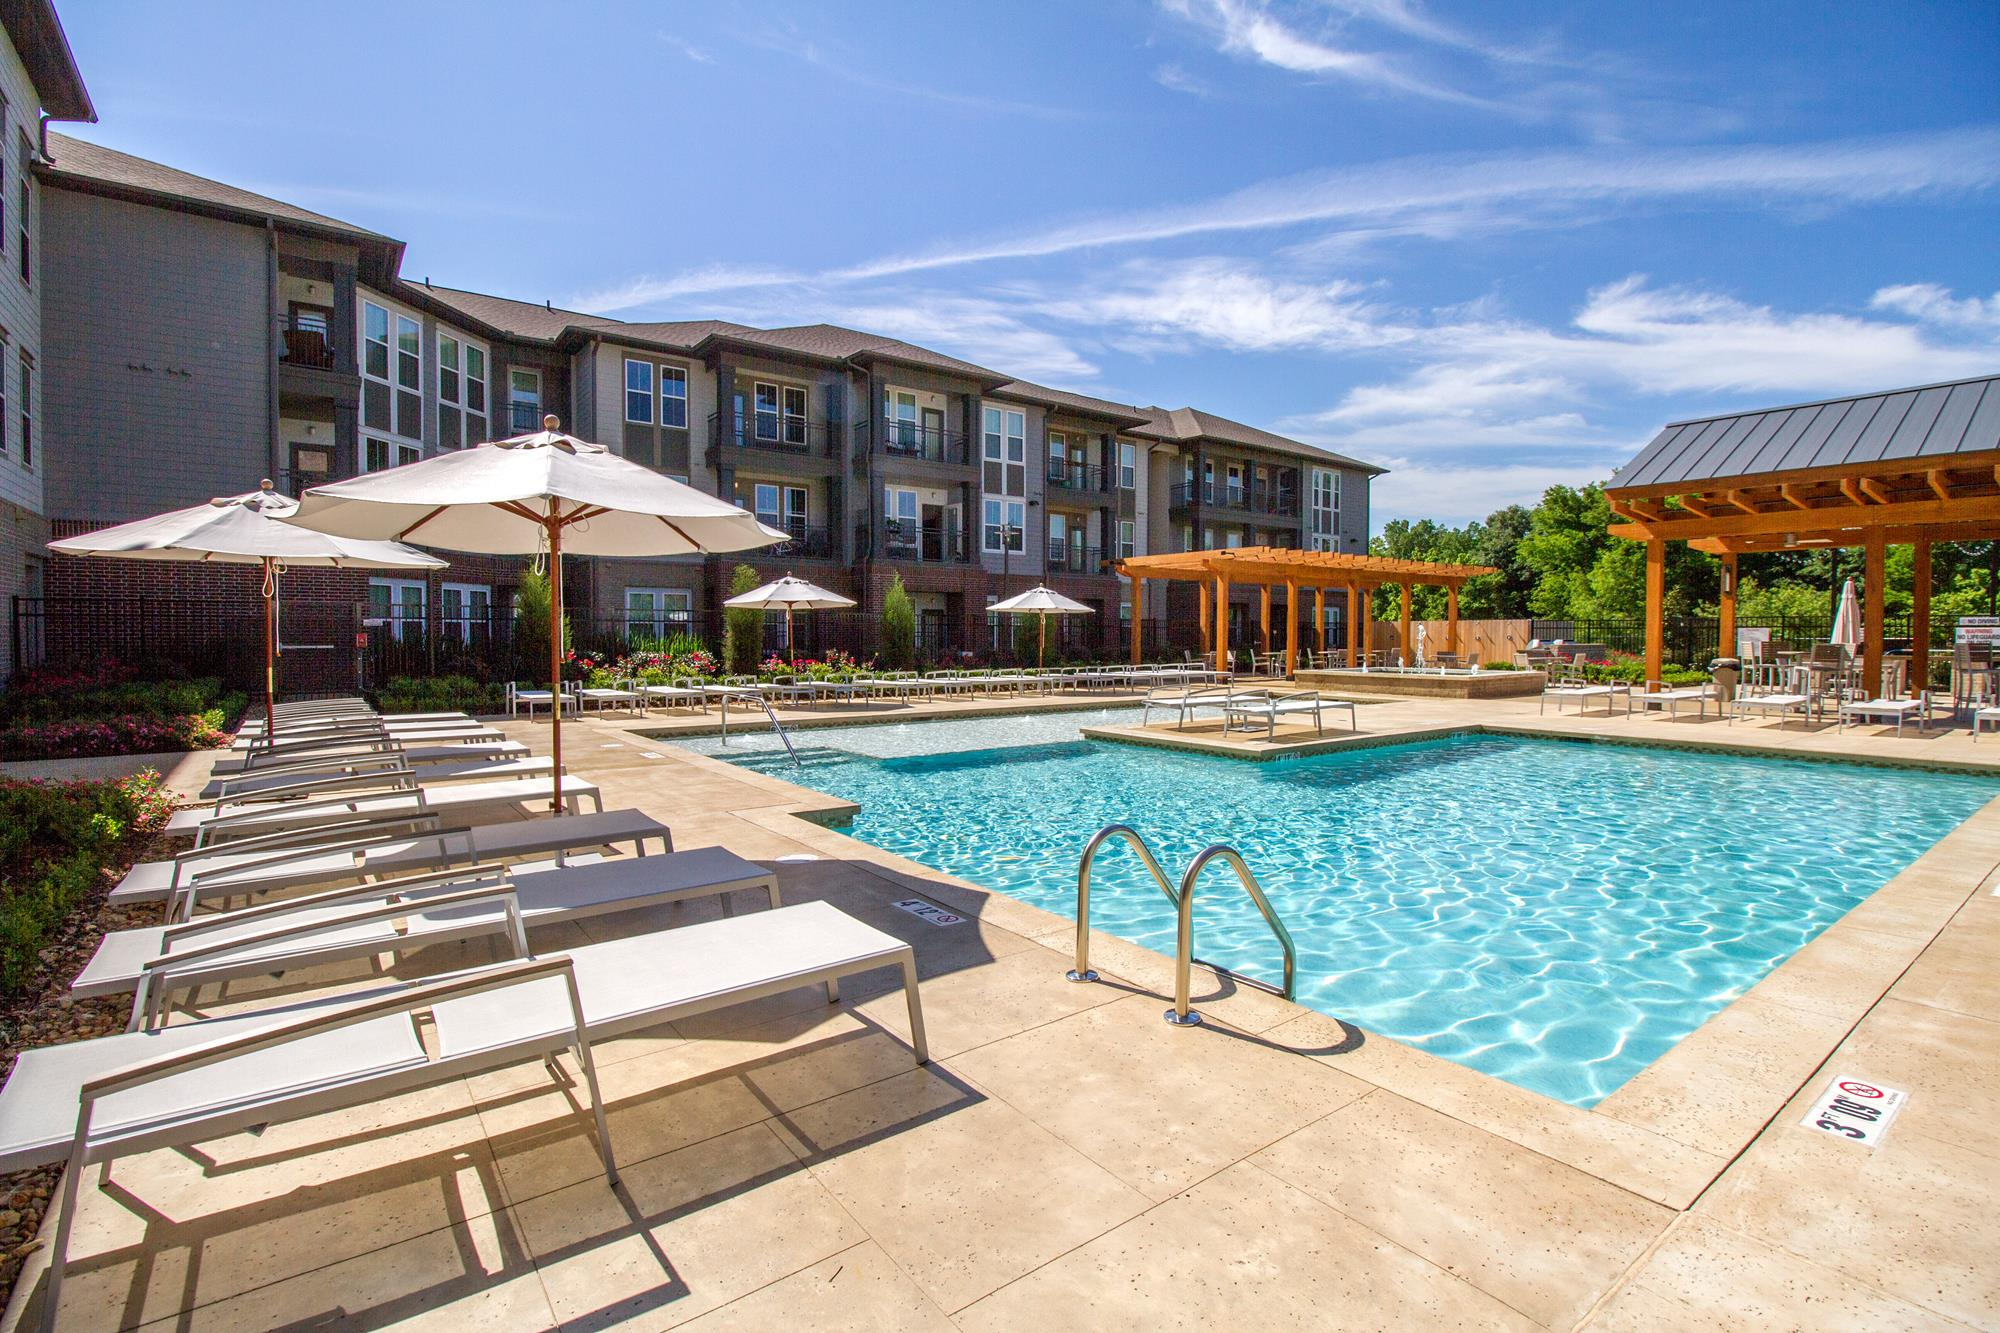 Outdoor Gathering Area by Pool at The District, Baton Rouge,Louisiana